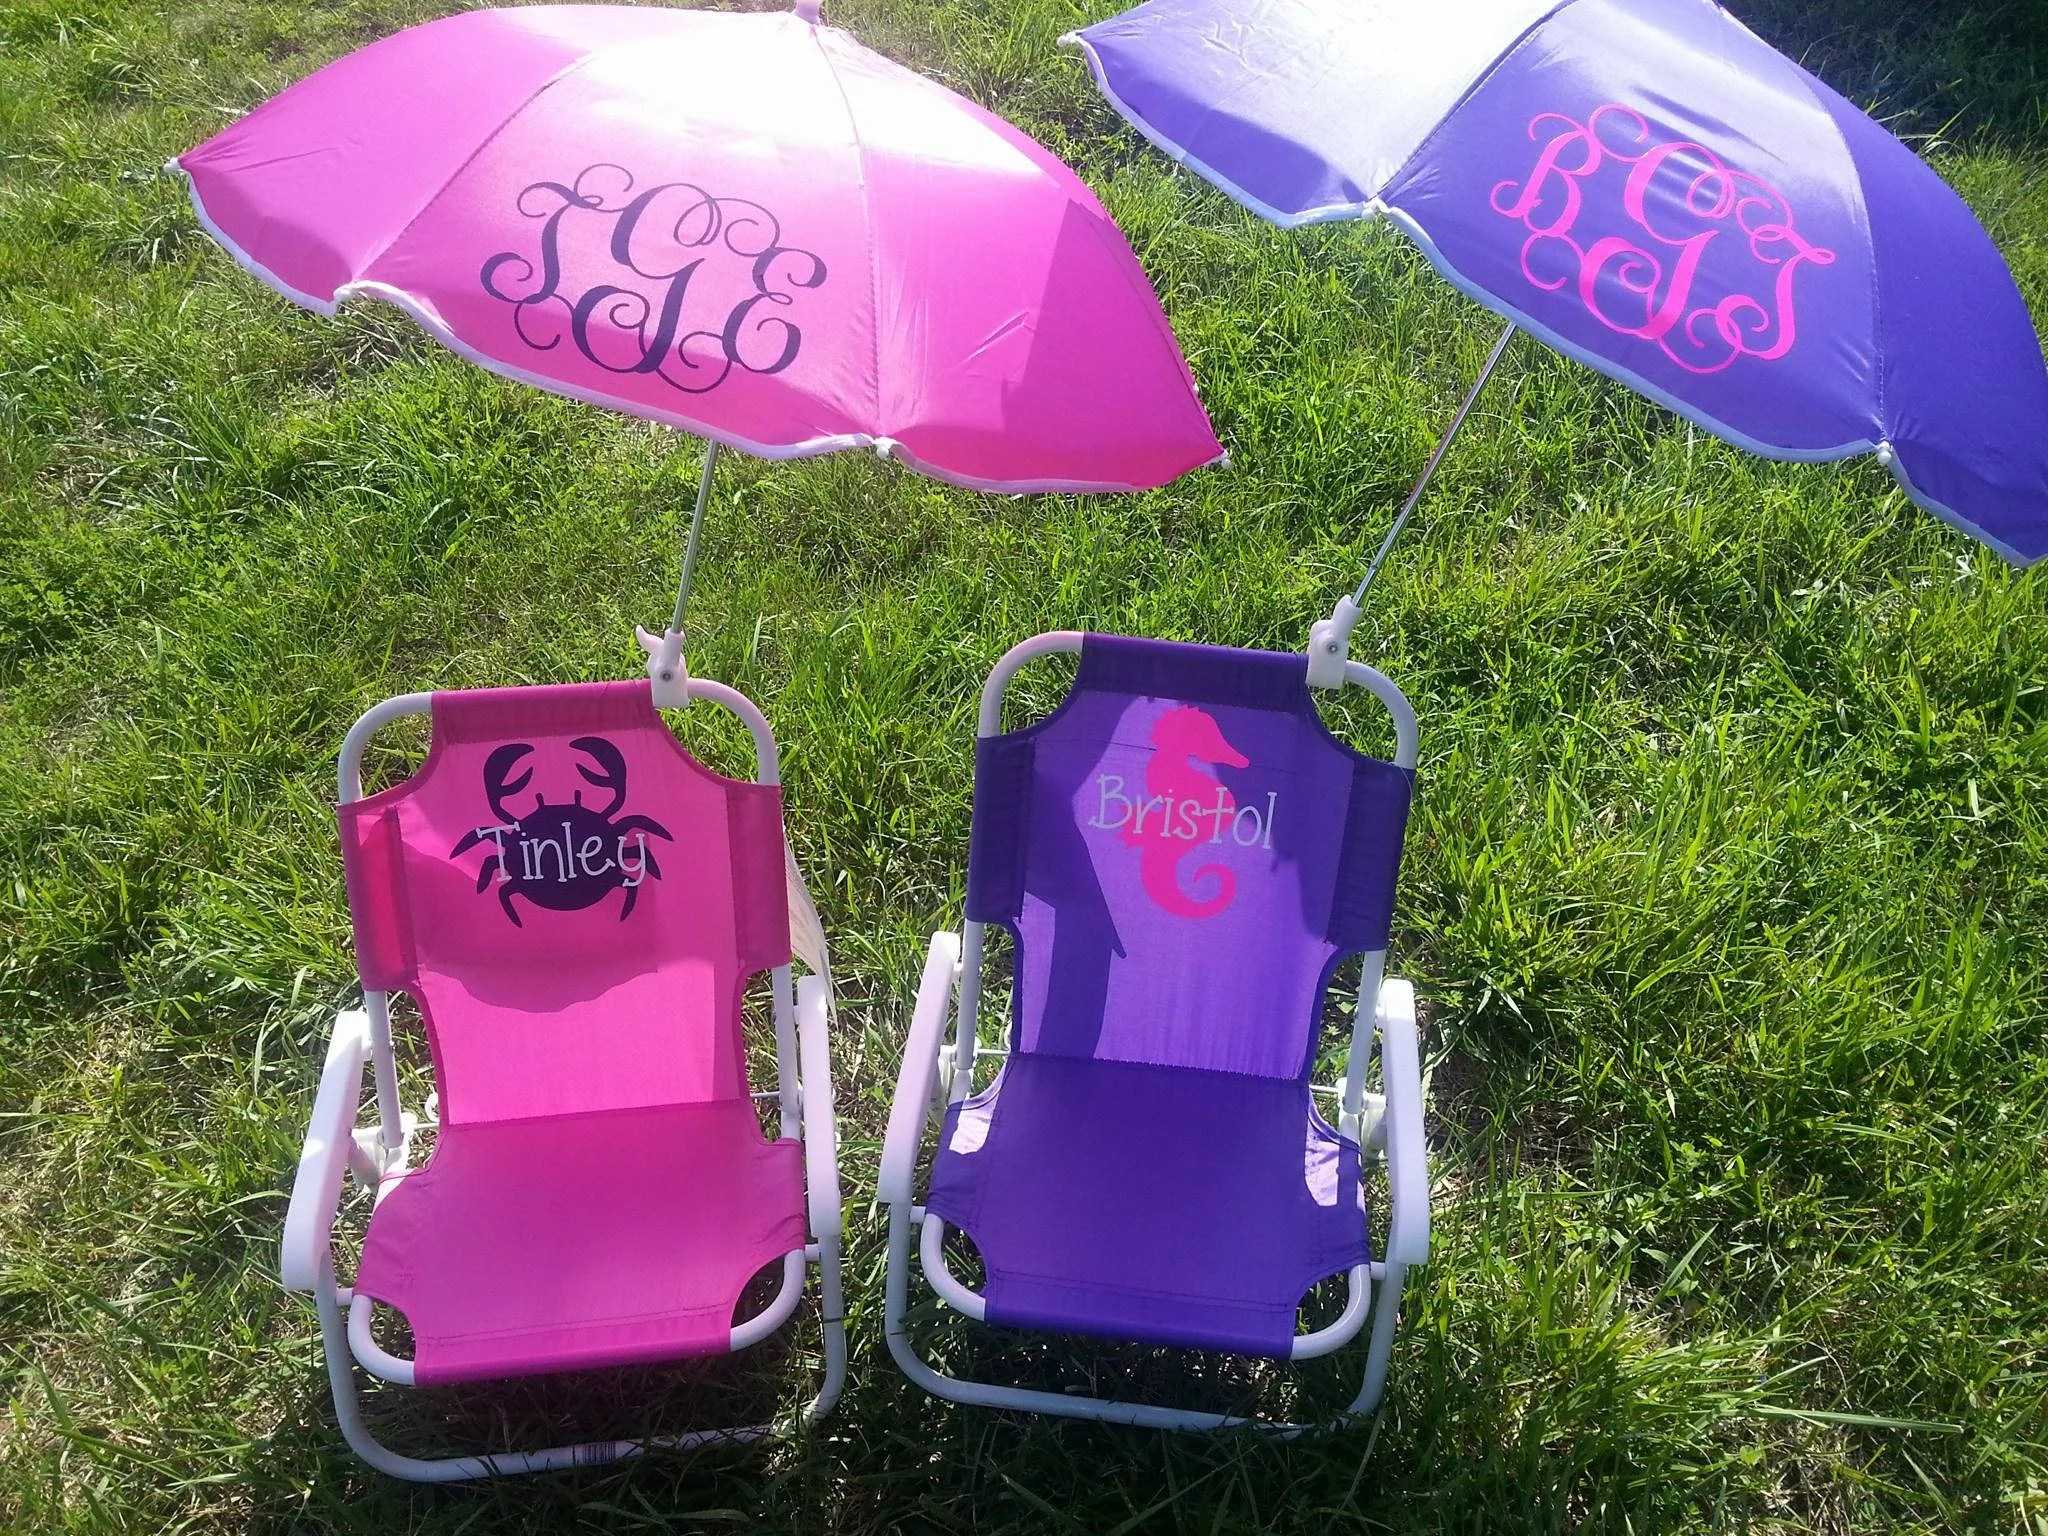 toddler beach chair personalized cover hire aberdare childrens and umbrella monogrammed etsy image 0